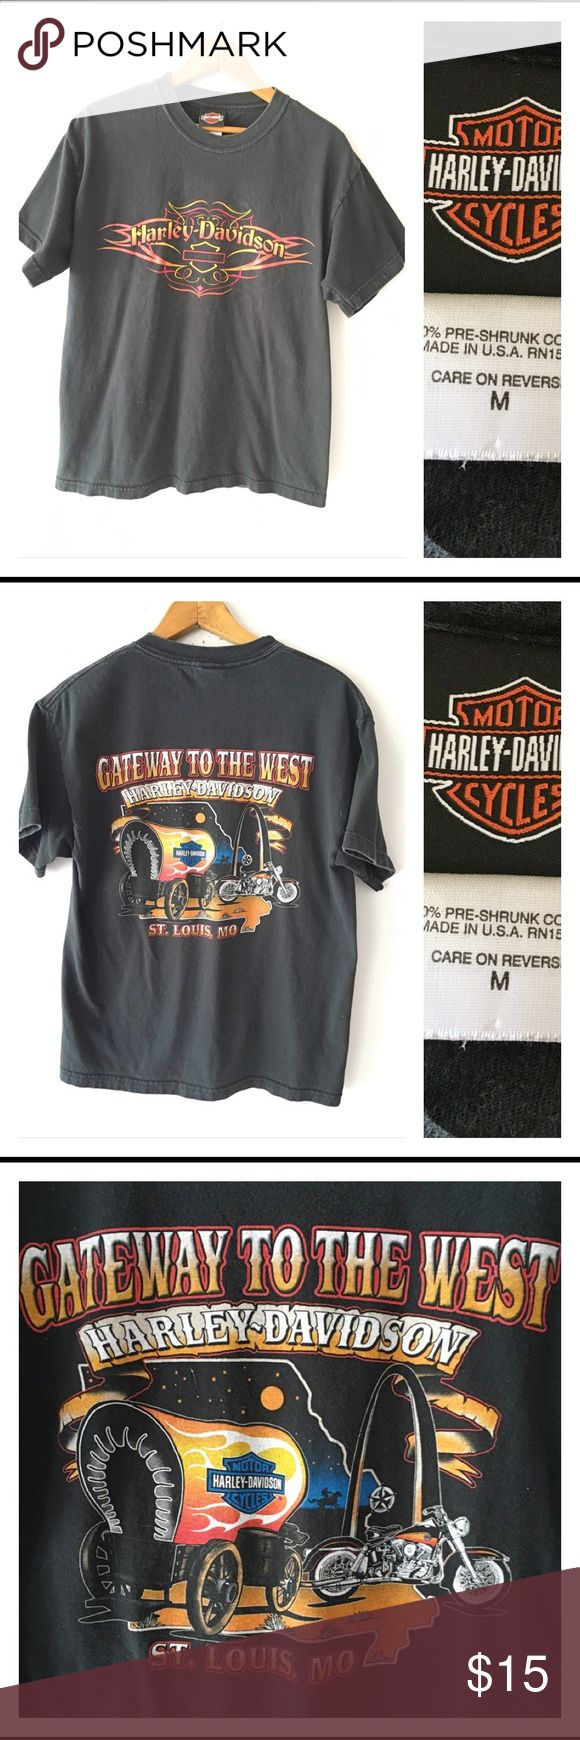 25 Best Ideas About Harley Davidson T Shirts On Pinterest